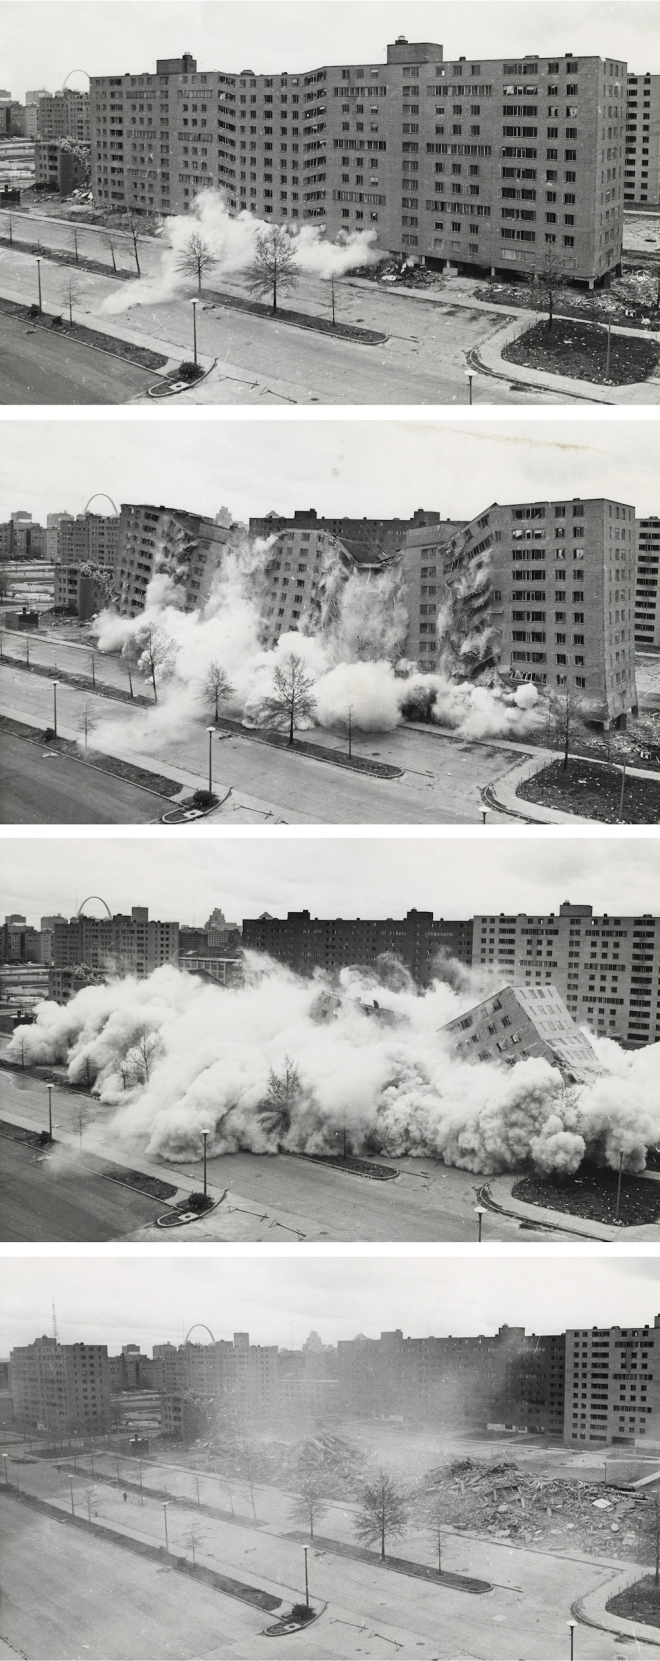 Pruitt-igoe_collapse-series smaller